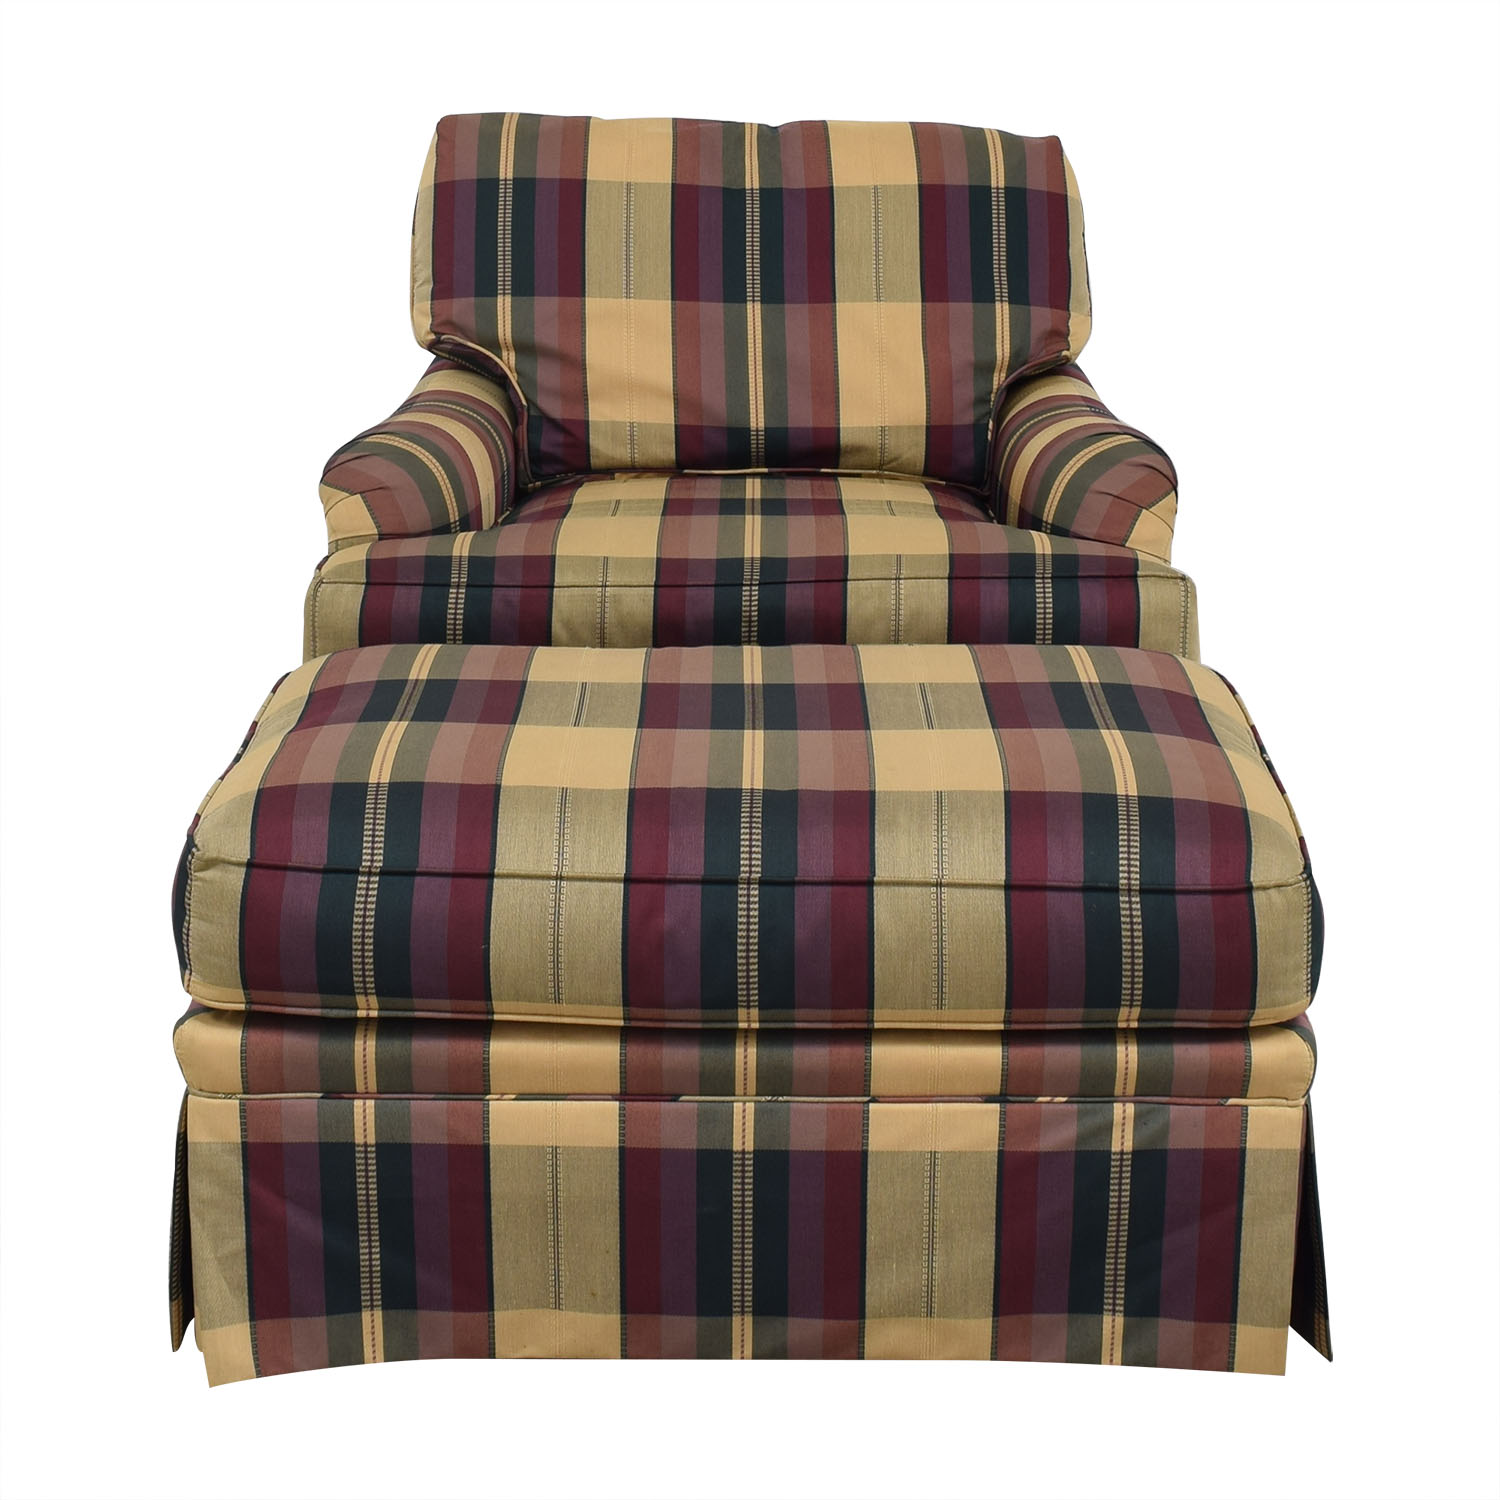 Vanguard Furniture Vanguard Furniture Plaid Fabiric Sofa and Matching Ottoman multi